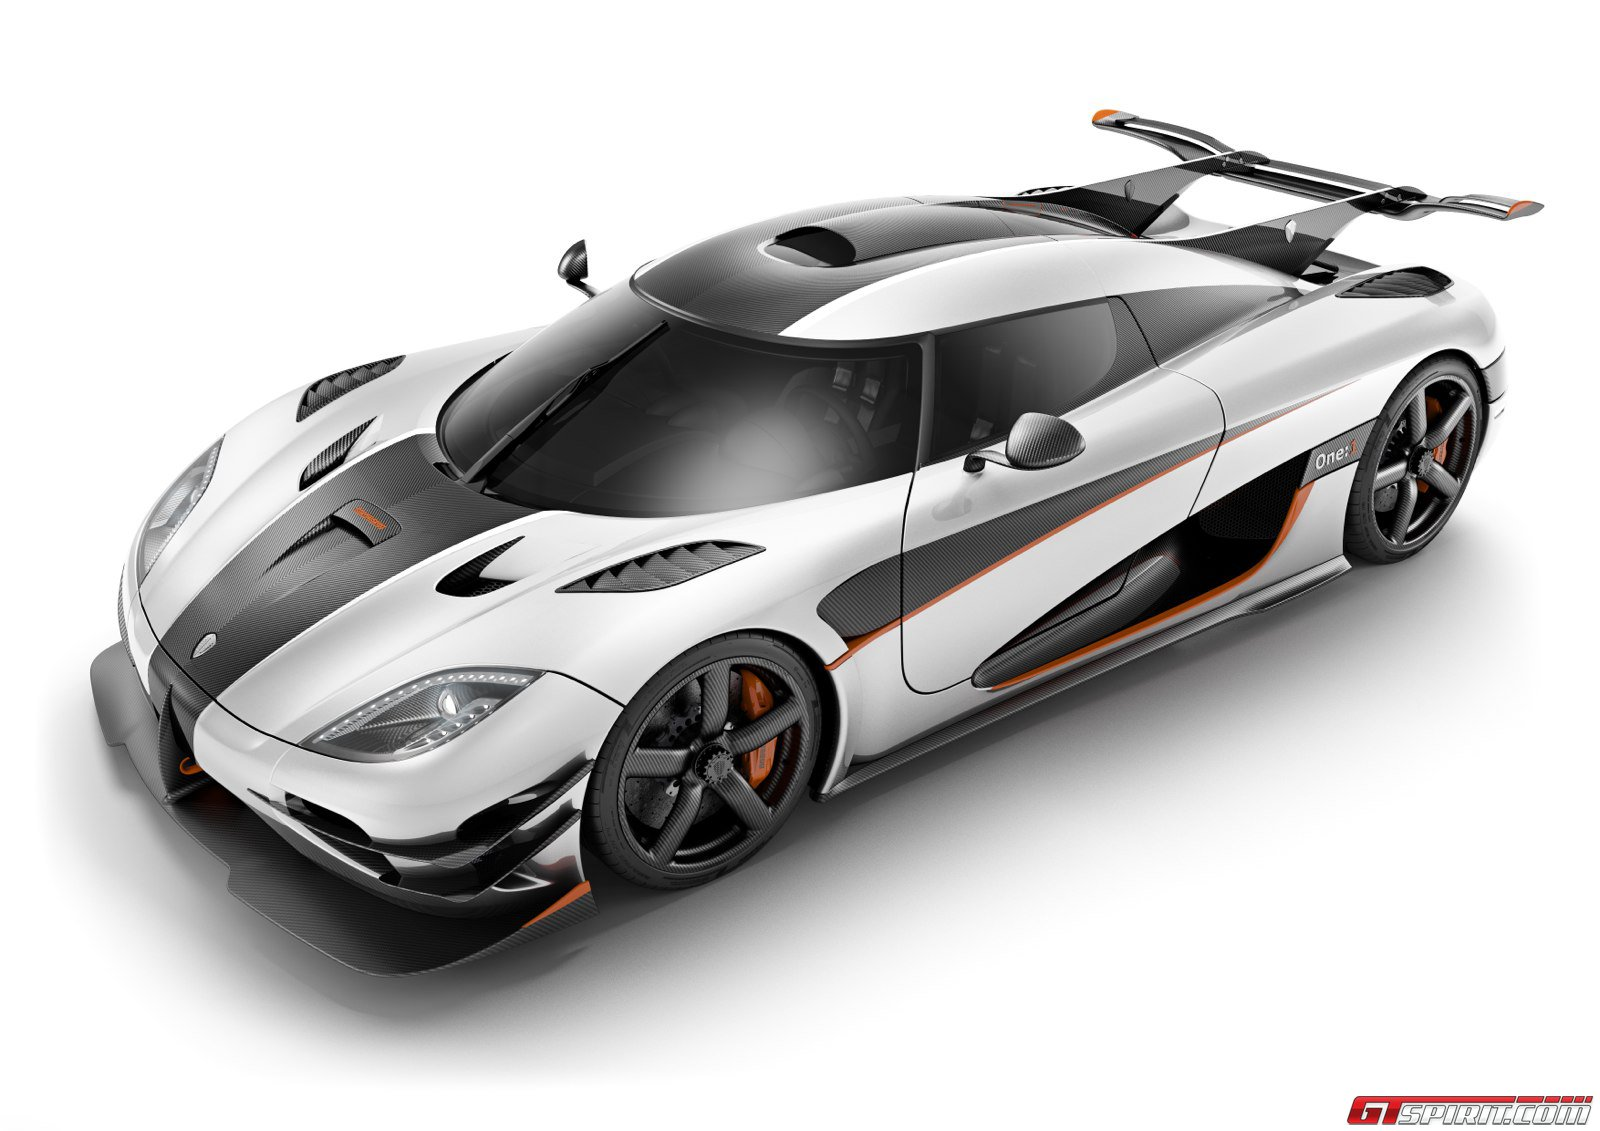 koenigsegg videos video 1 - photo #8